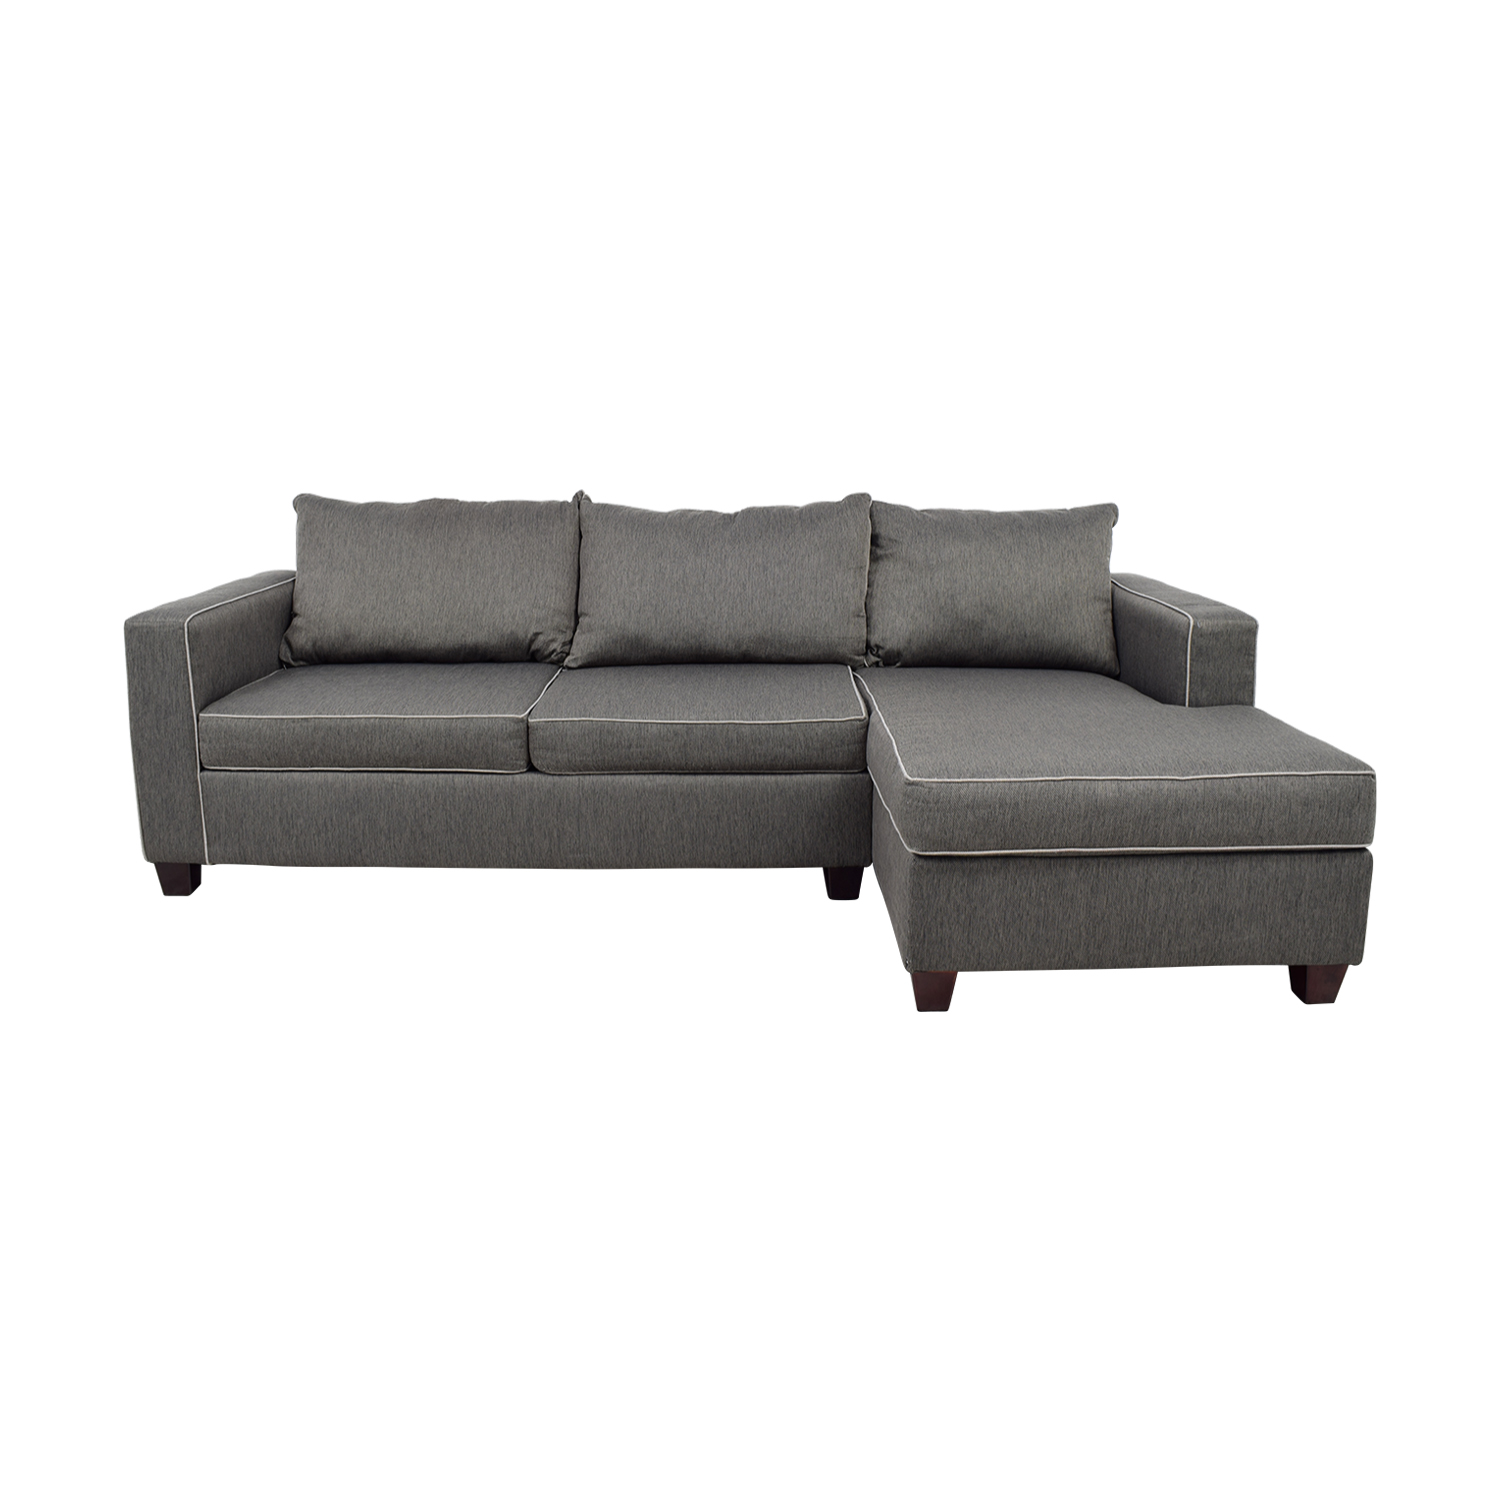 Bobs Furniture Bobs Furniture Alex Grey Chaise Sectional Second Hand